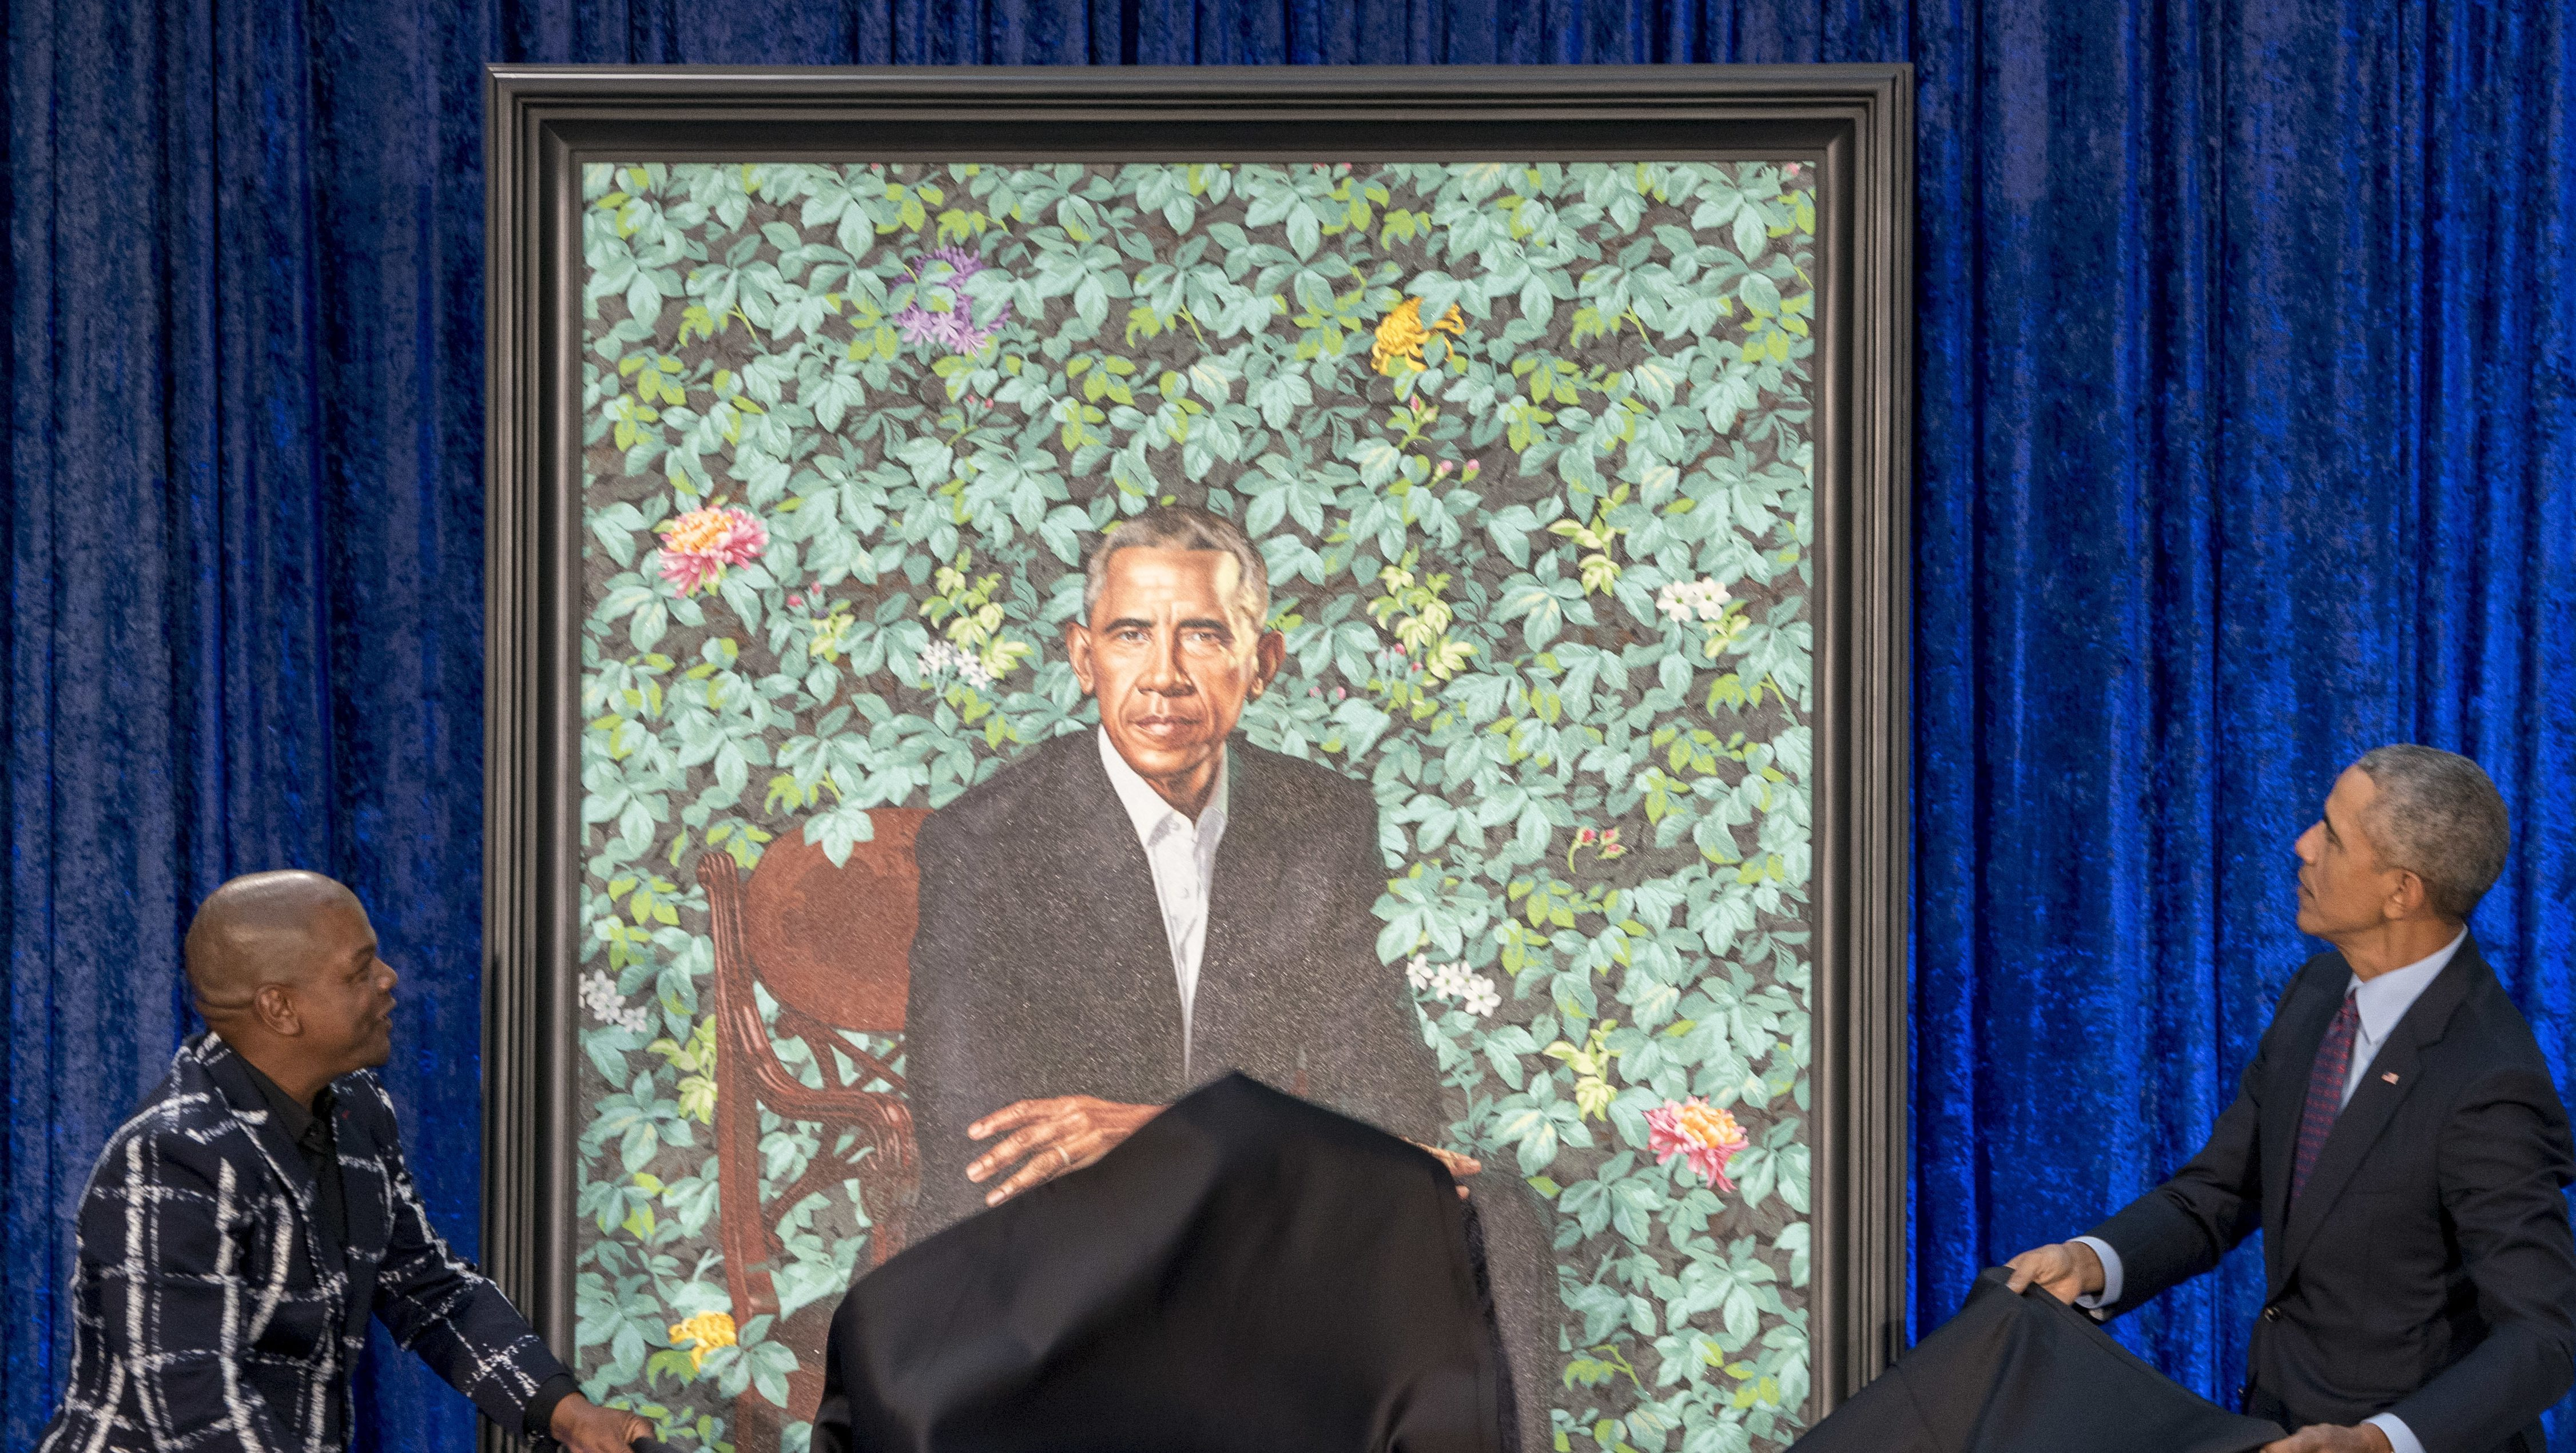 Former President Barack Obama, right, and Artist Kehinde Wiley, left, unveil Obama's official portrait at the Smithsonian's National Portrait Gallery, Monday, Feb. 12, 2018, in Washington.